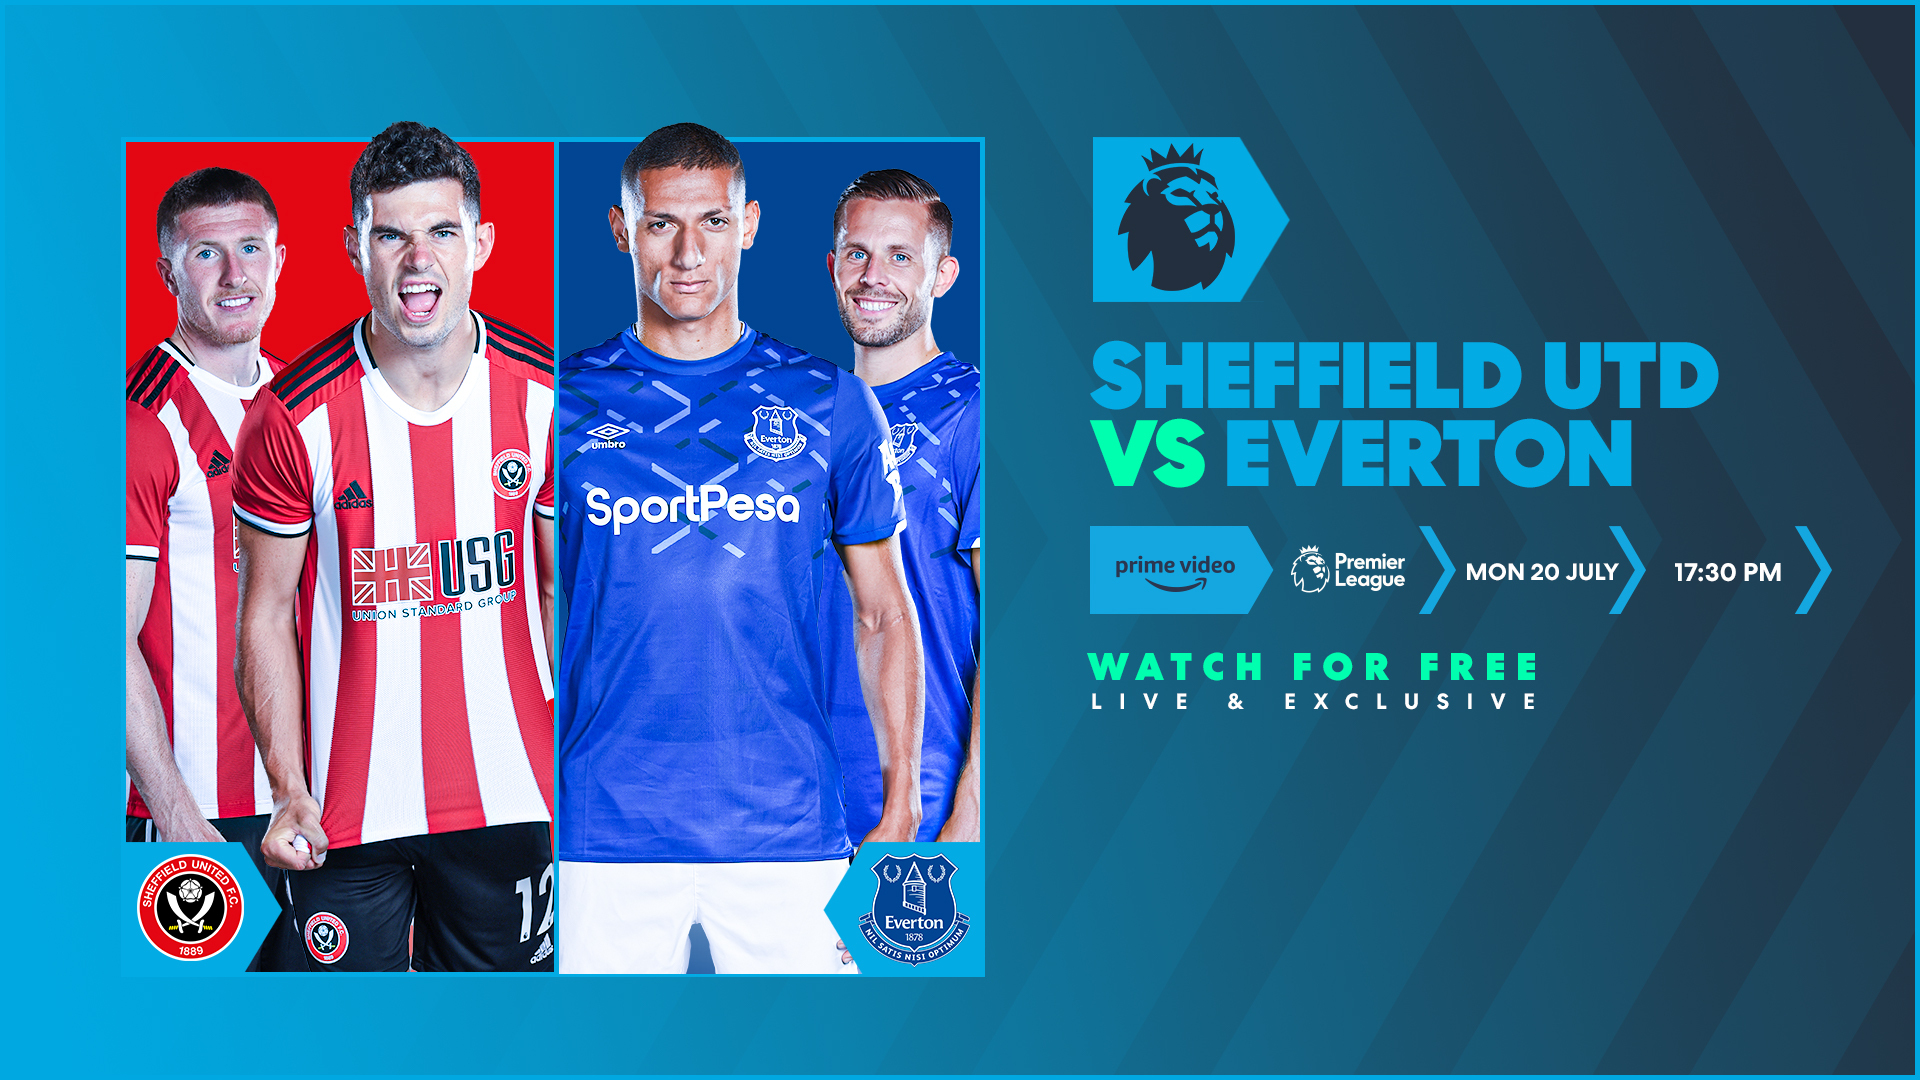 Sheffield United v Everton on Twitch and Amazon Prime Video